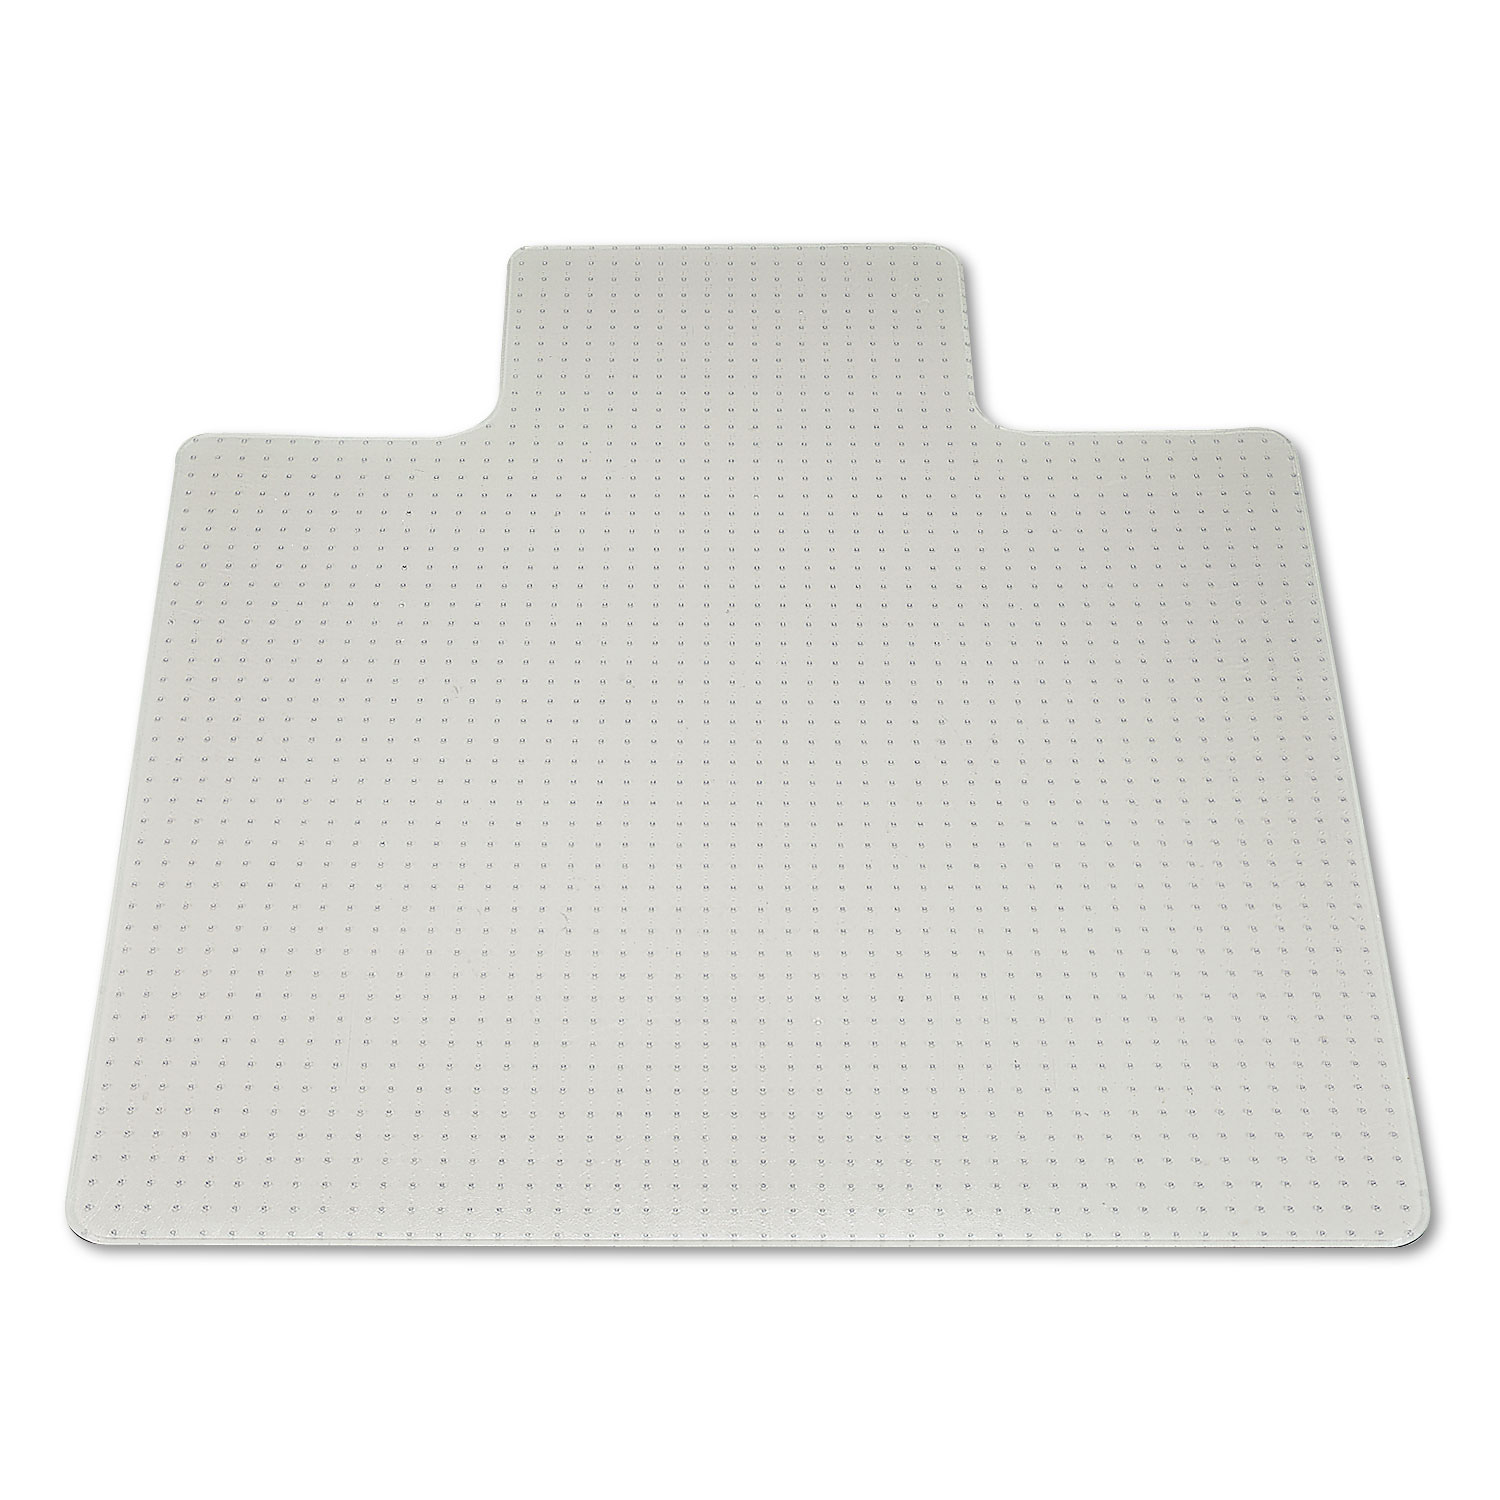 NSN3053062 Thumbnail 1 ...  sc 1 st  On Time Supplies & Heavy-Duty Chair Mat by AbilityOne® NSN3053062 | OnTimeSupplies.com